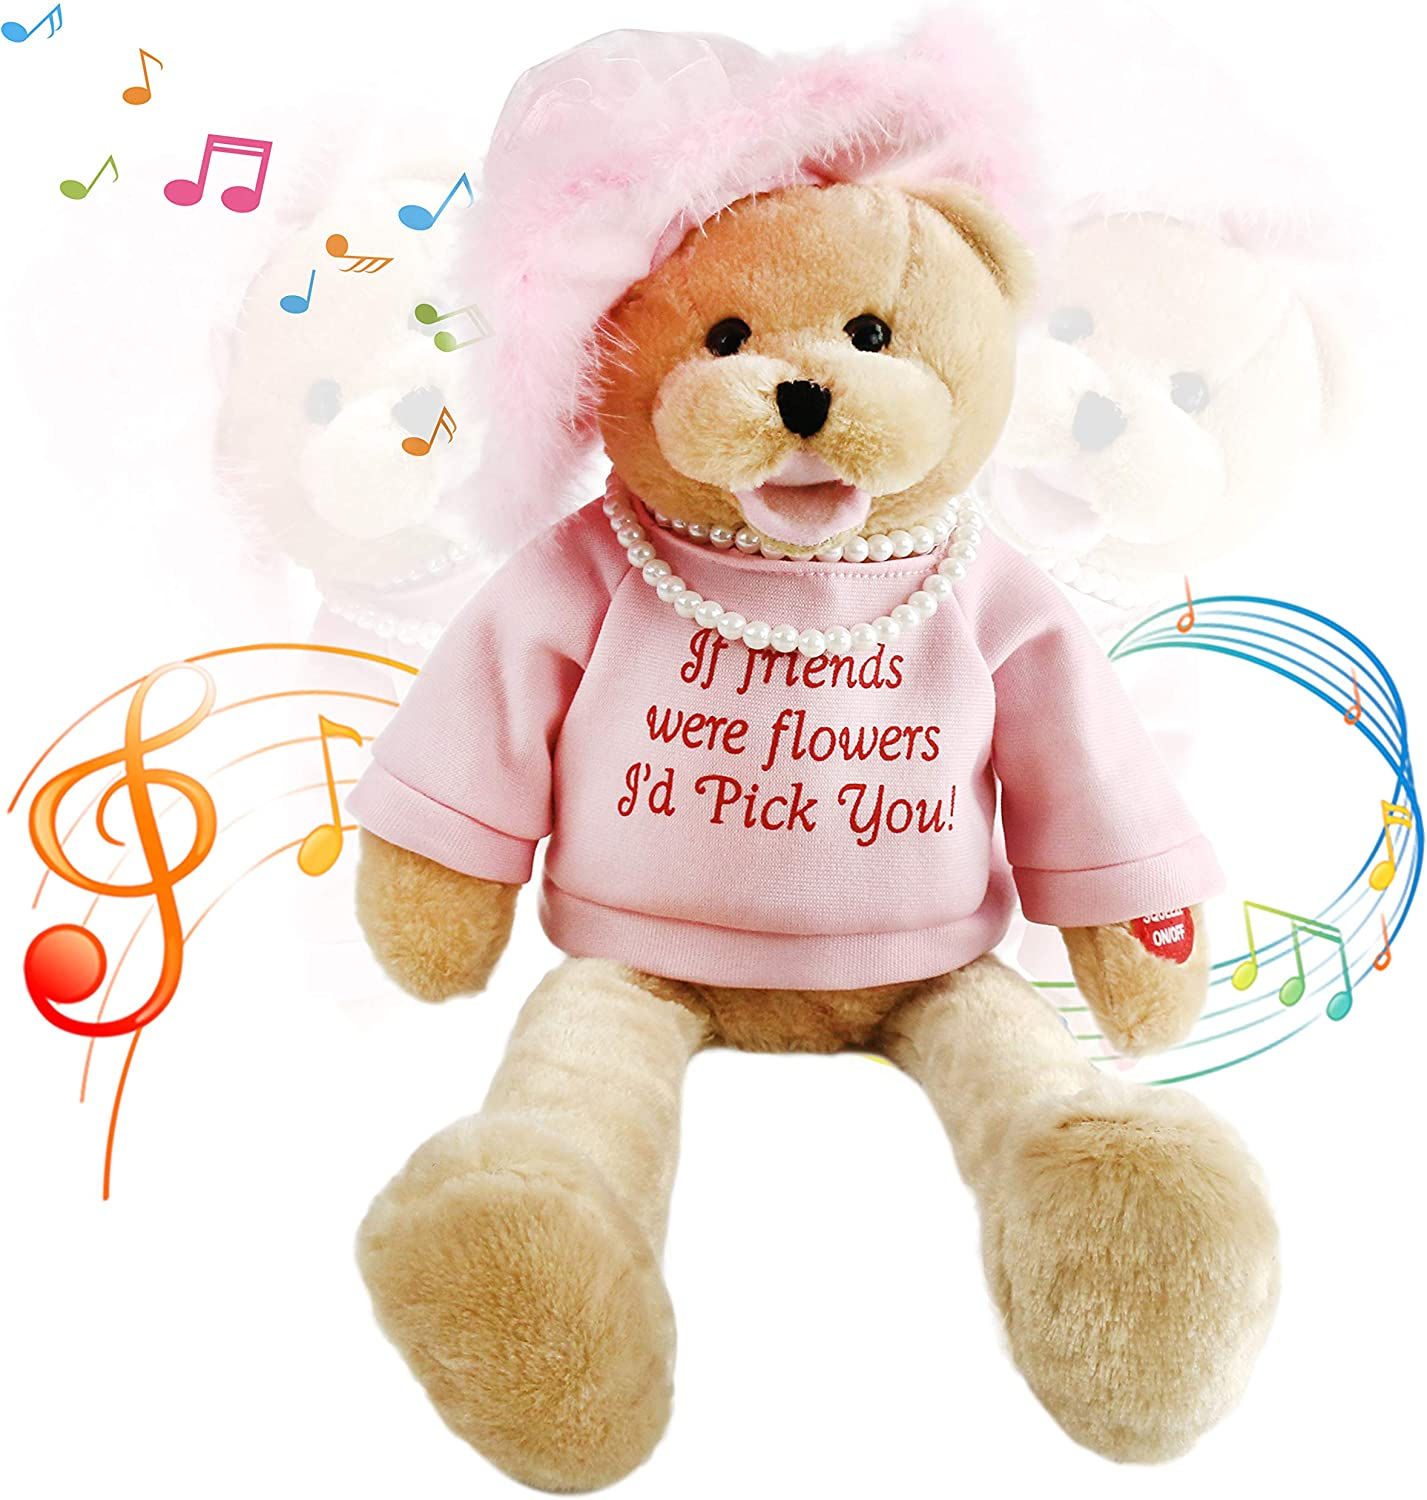 Amazon Com Houwsbaby Musical Teddy Bear With Pearl Sings That S What Friends Are For Interactive Stuffed Animal Shaking Head Animated Plush Toy Gift For Kids Toddlers Mother S Day Birthday 20 Pink Toys